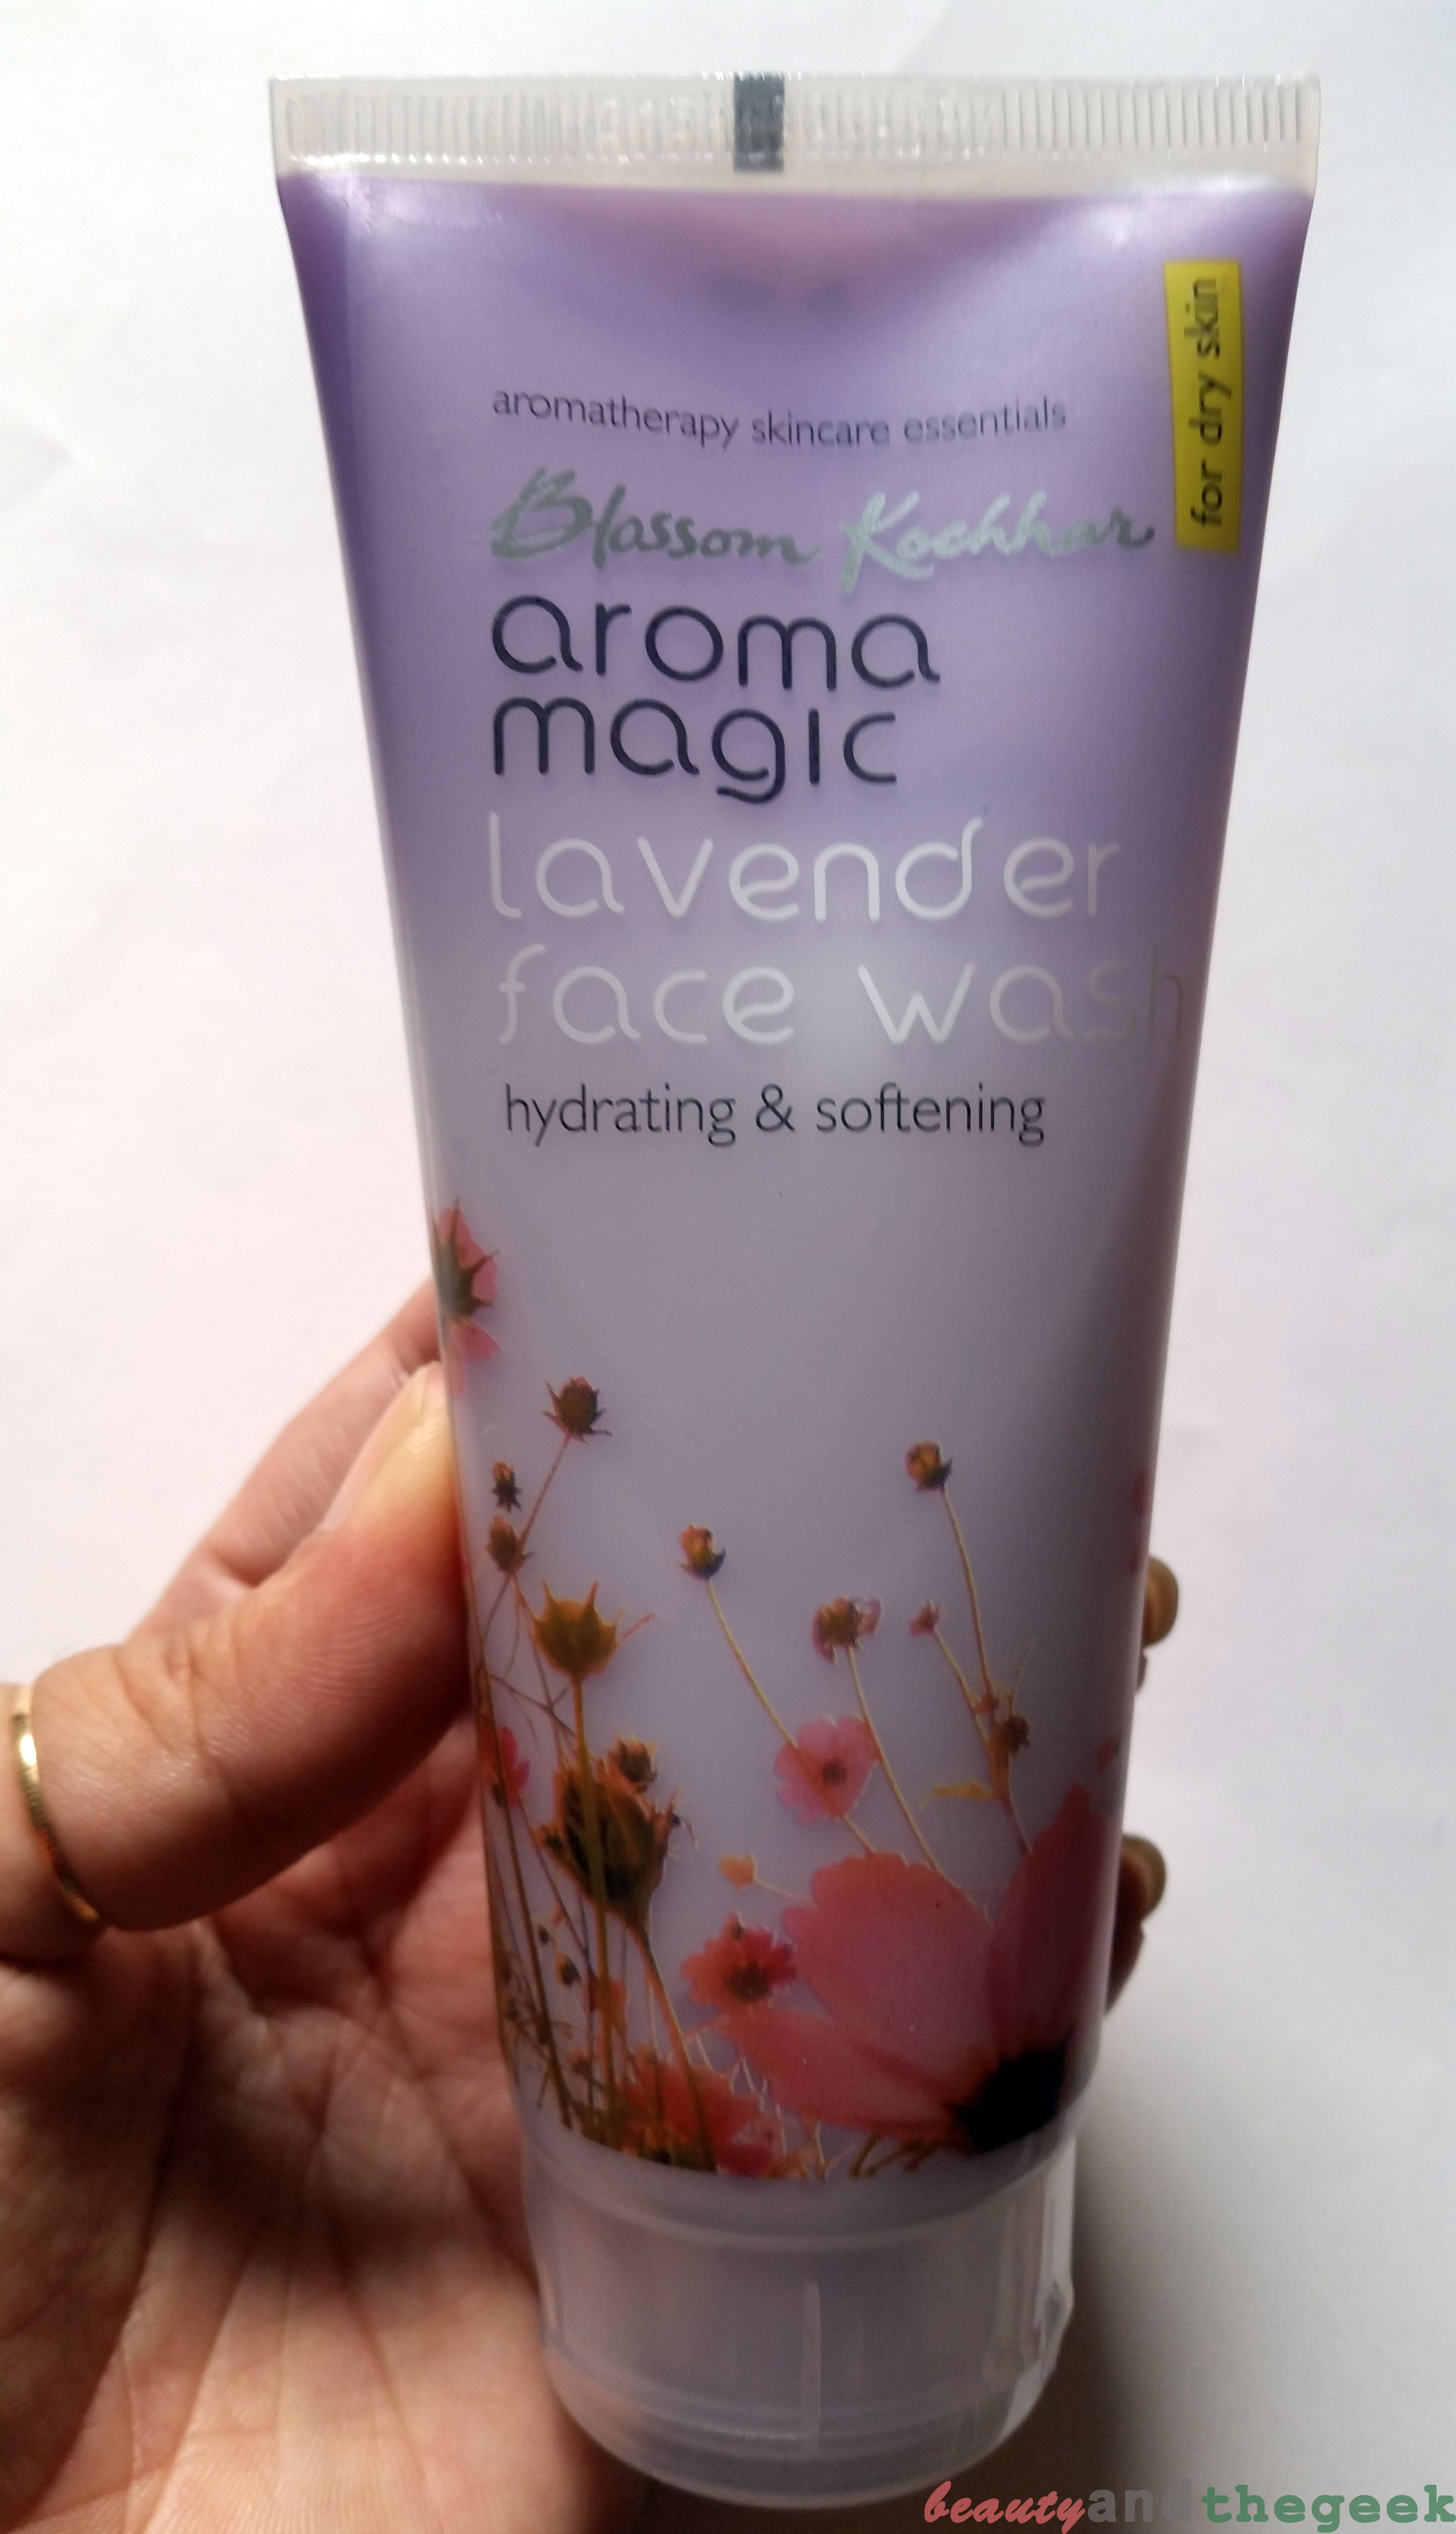 Aroma Magic Lavender Face wash for dry skin- Review